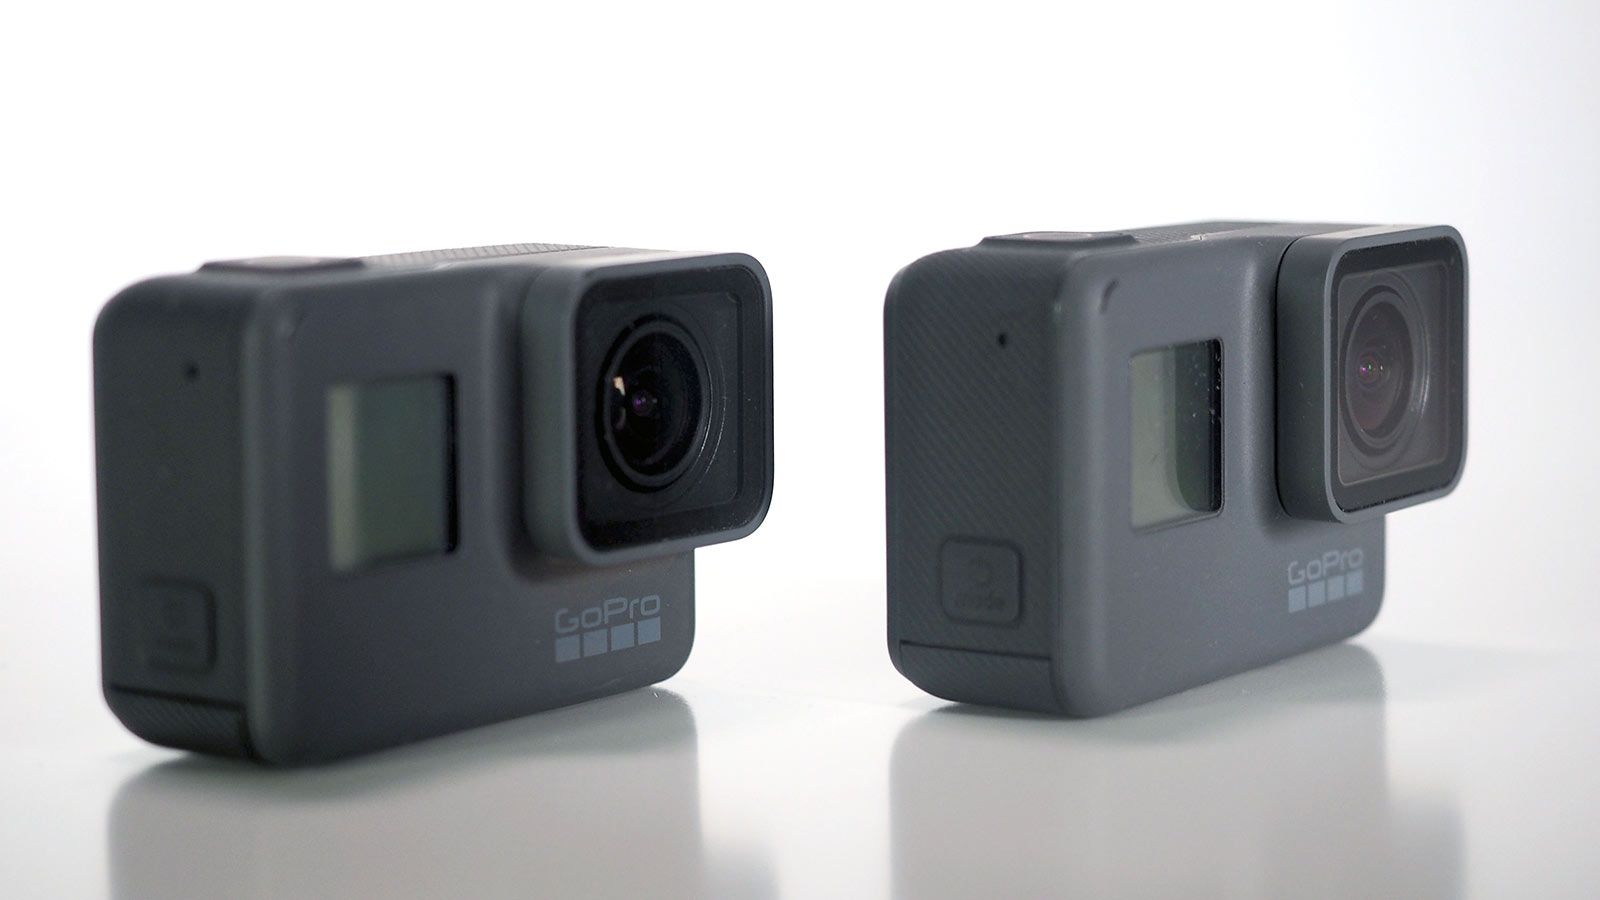 gopro hero 6 review slow mo stabilization and subtle refinements aivanet. Black Bedroom Furniture Sets. Home Design Ideas